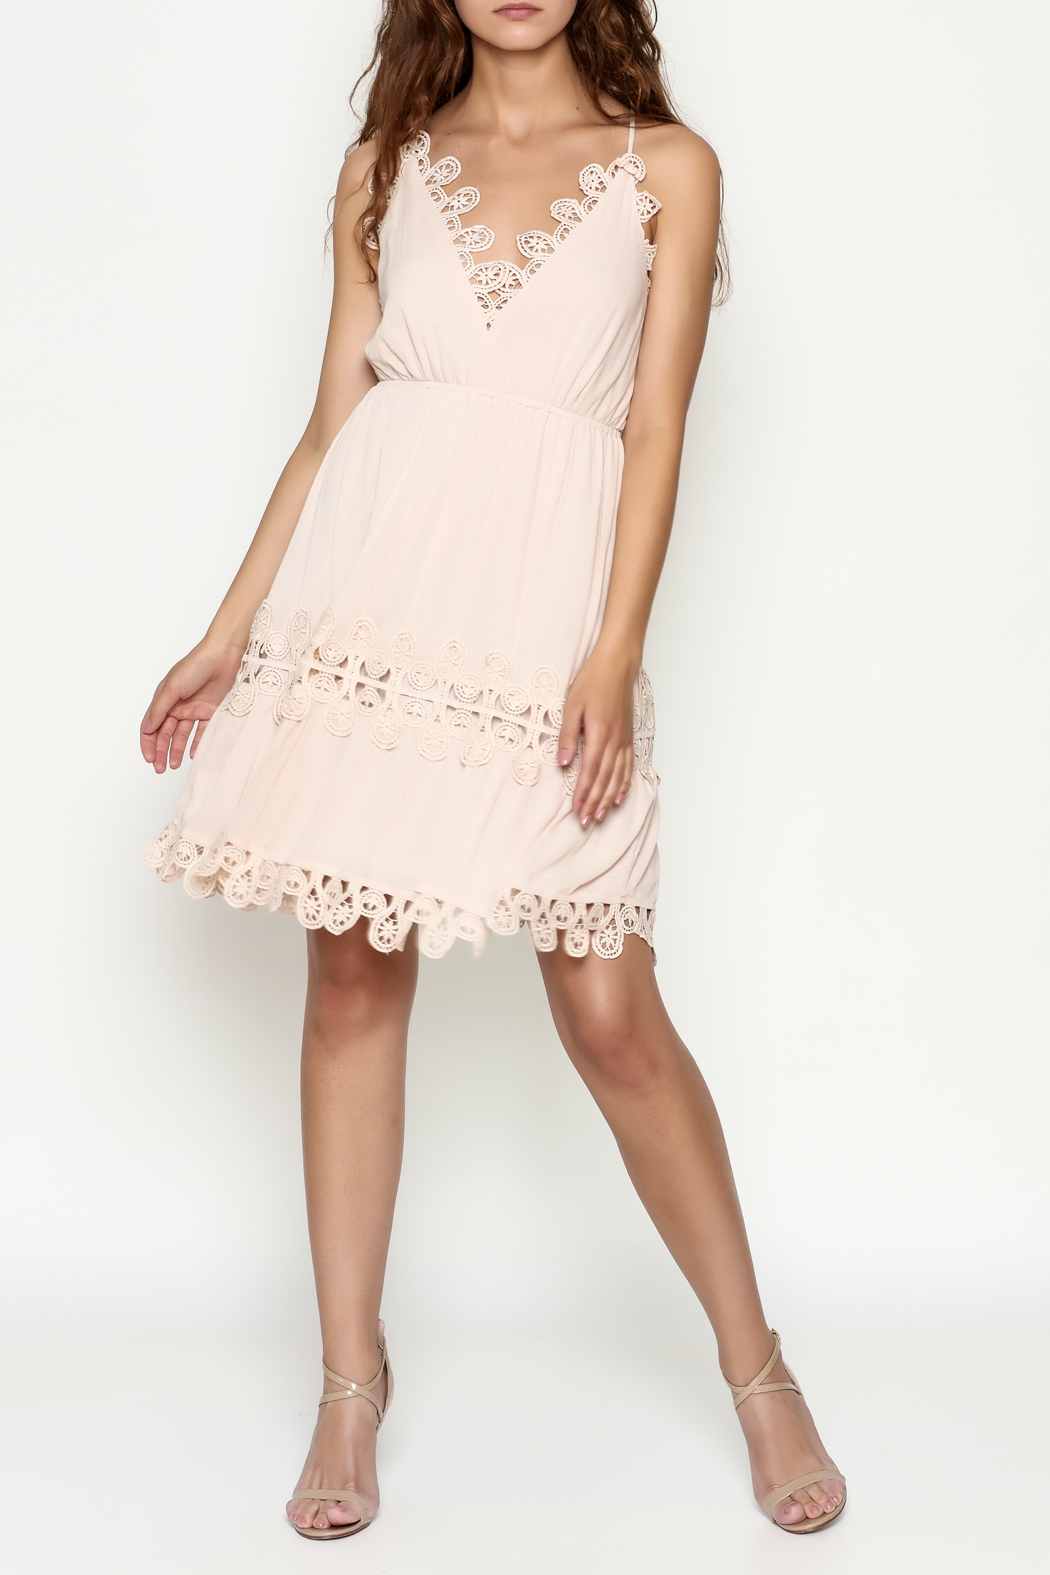 Ark & Co. Crochet Dress - Side Cropped Image